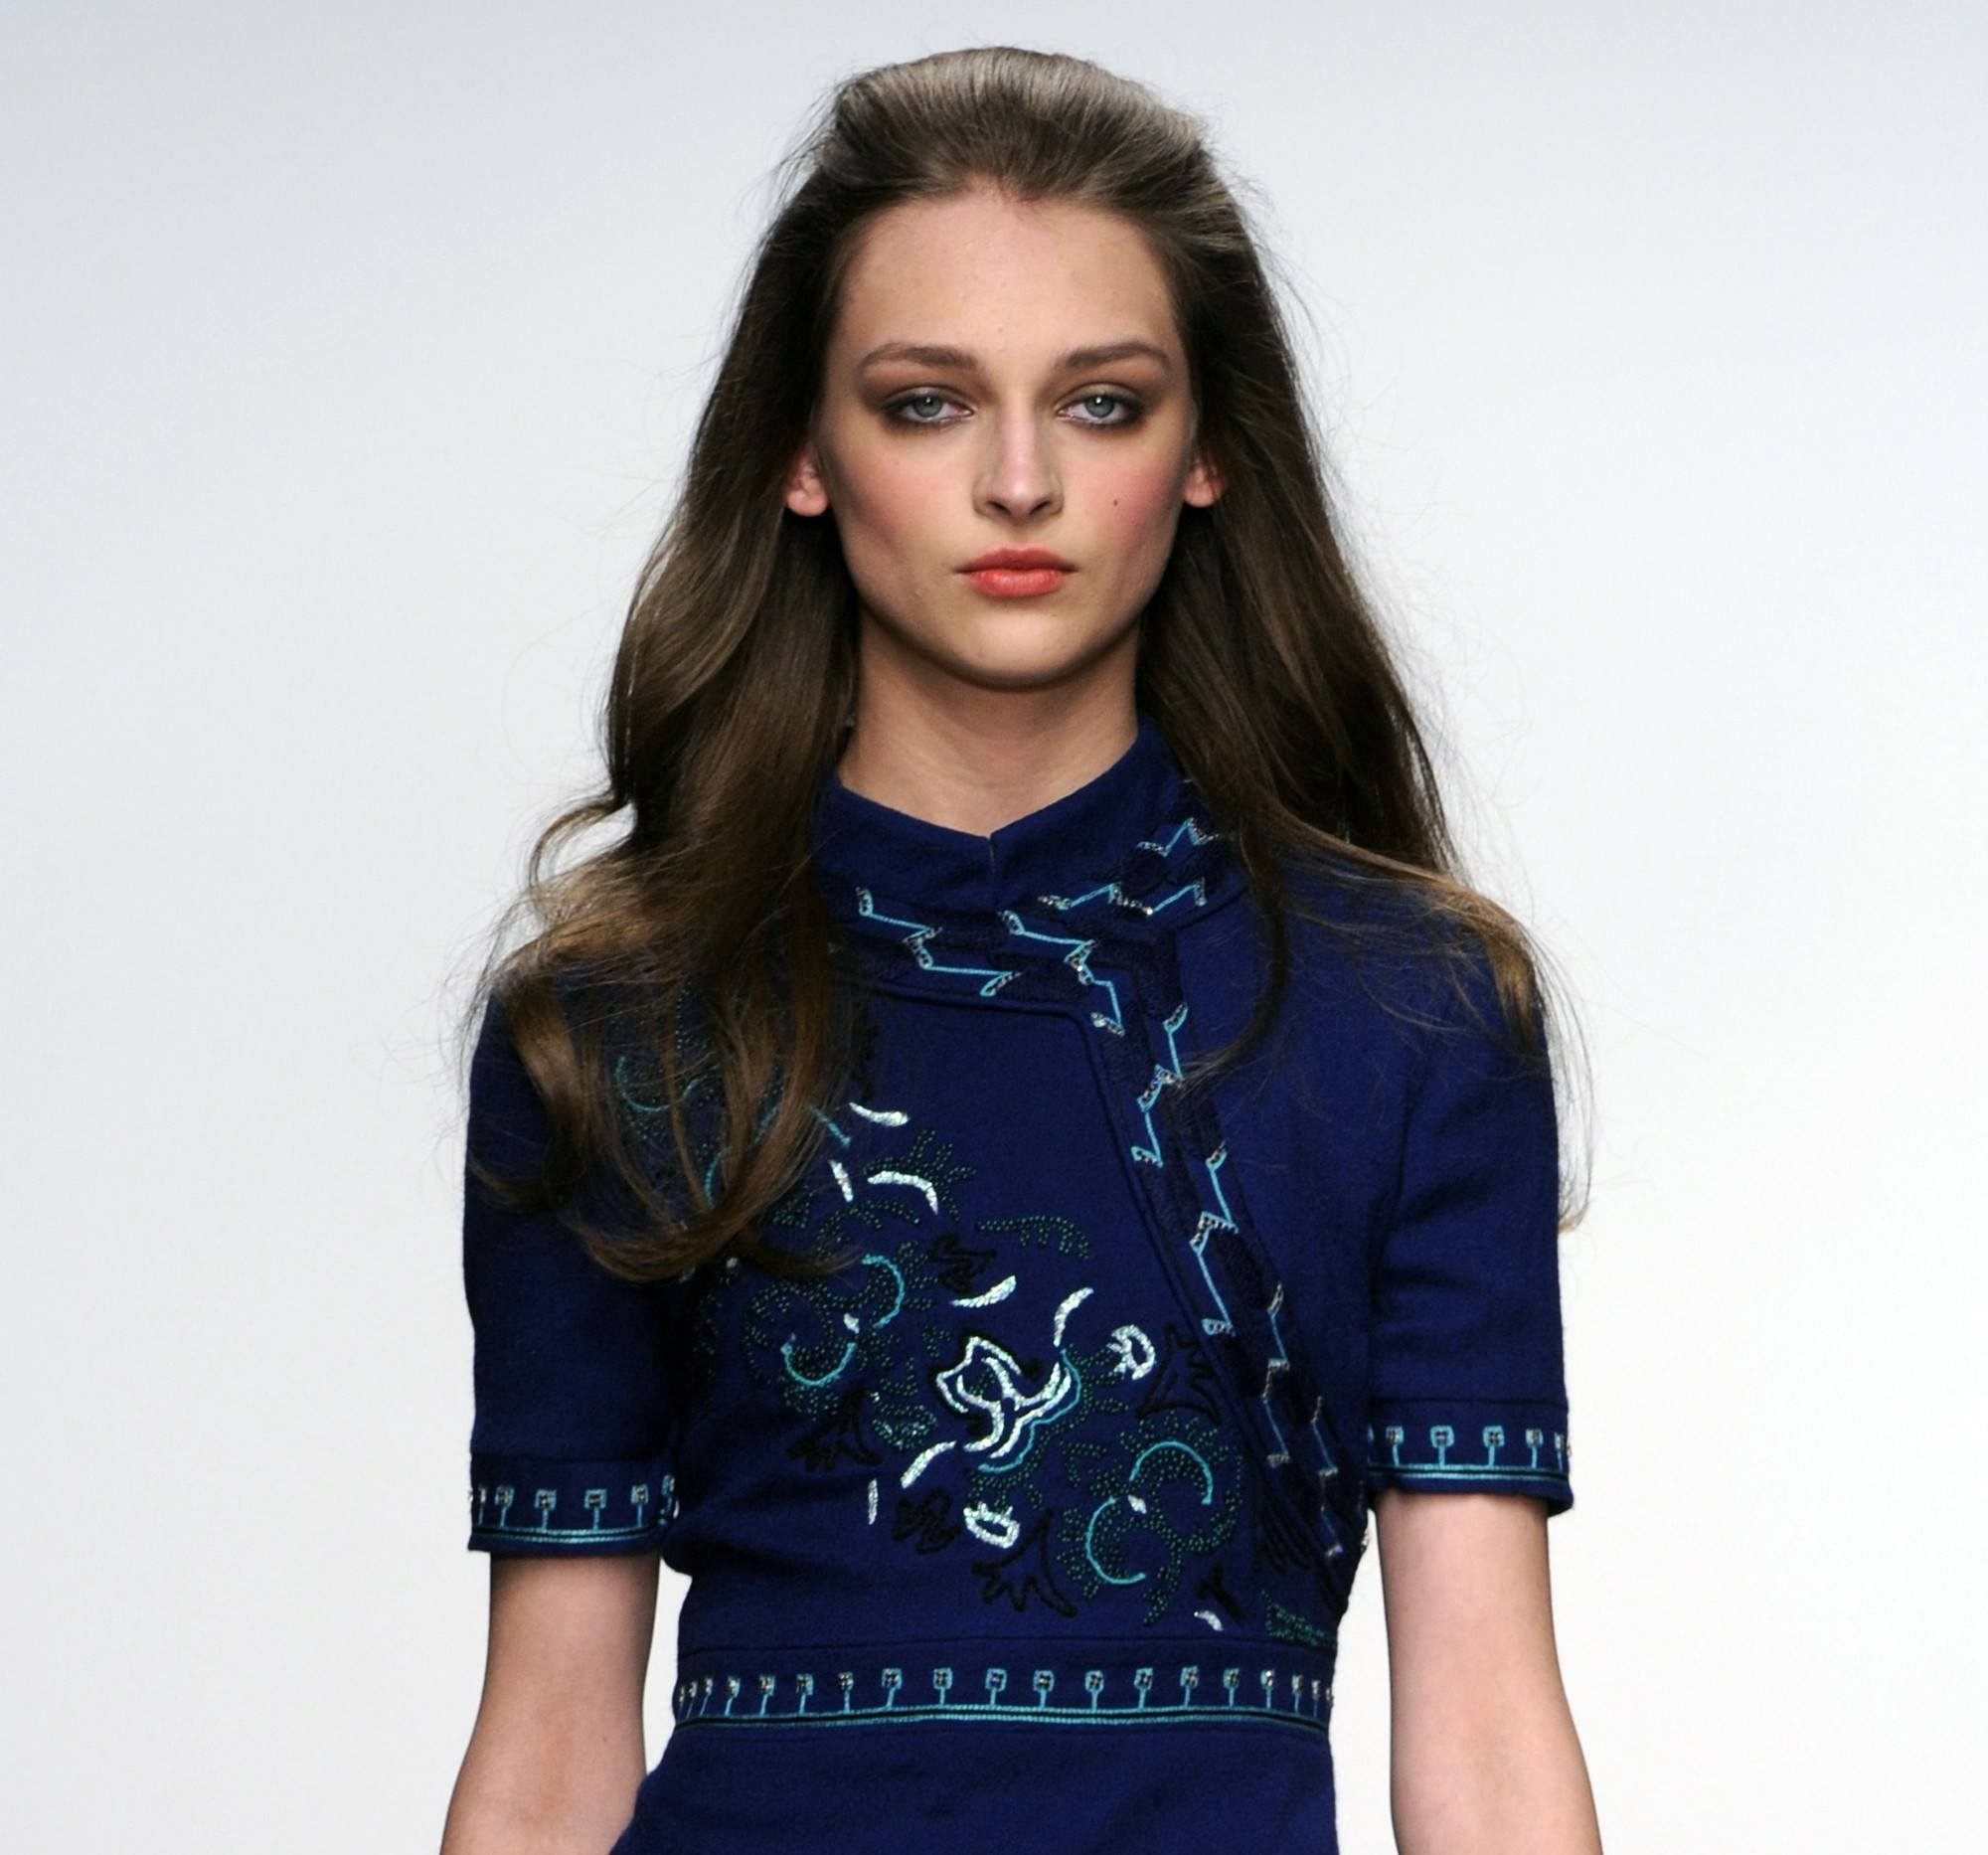 easy vintage hair ideas: close up shot of model on the Issa runway with Jackie O-inspired swept-back strands, wearing blue dress